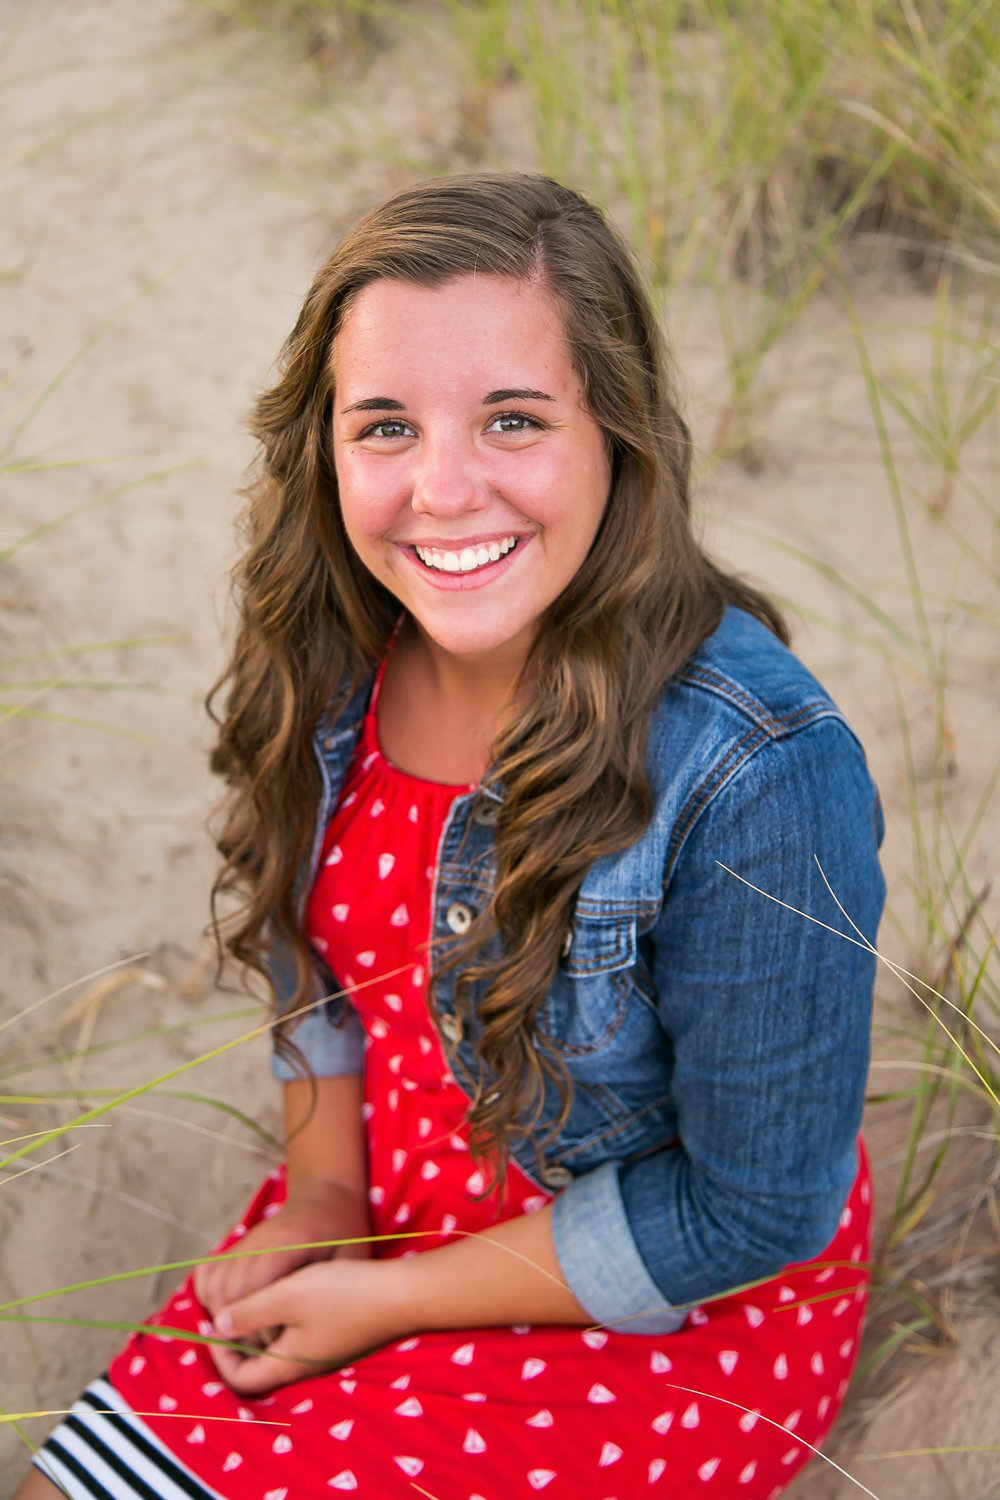 Southwestern Michigan Senior Portraits